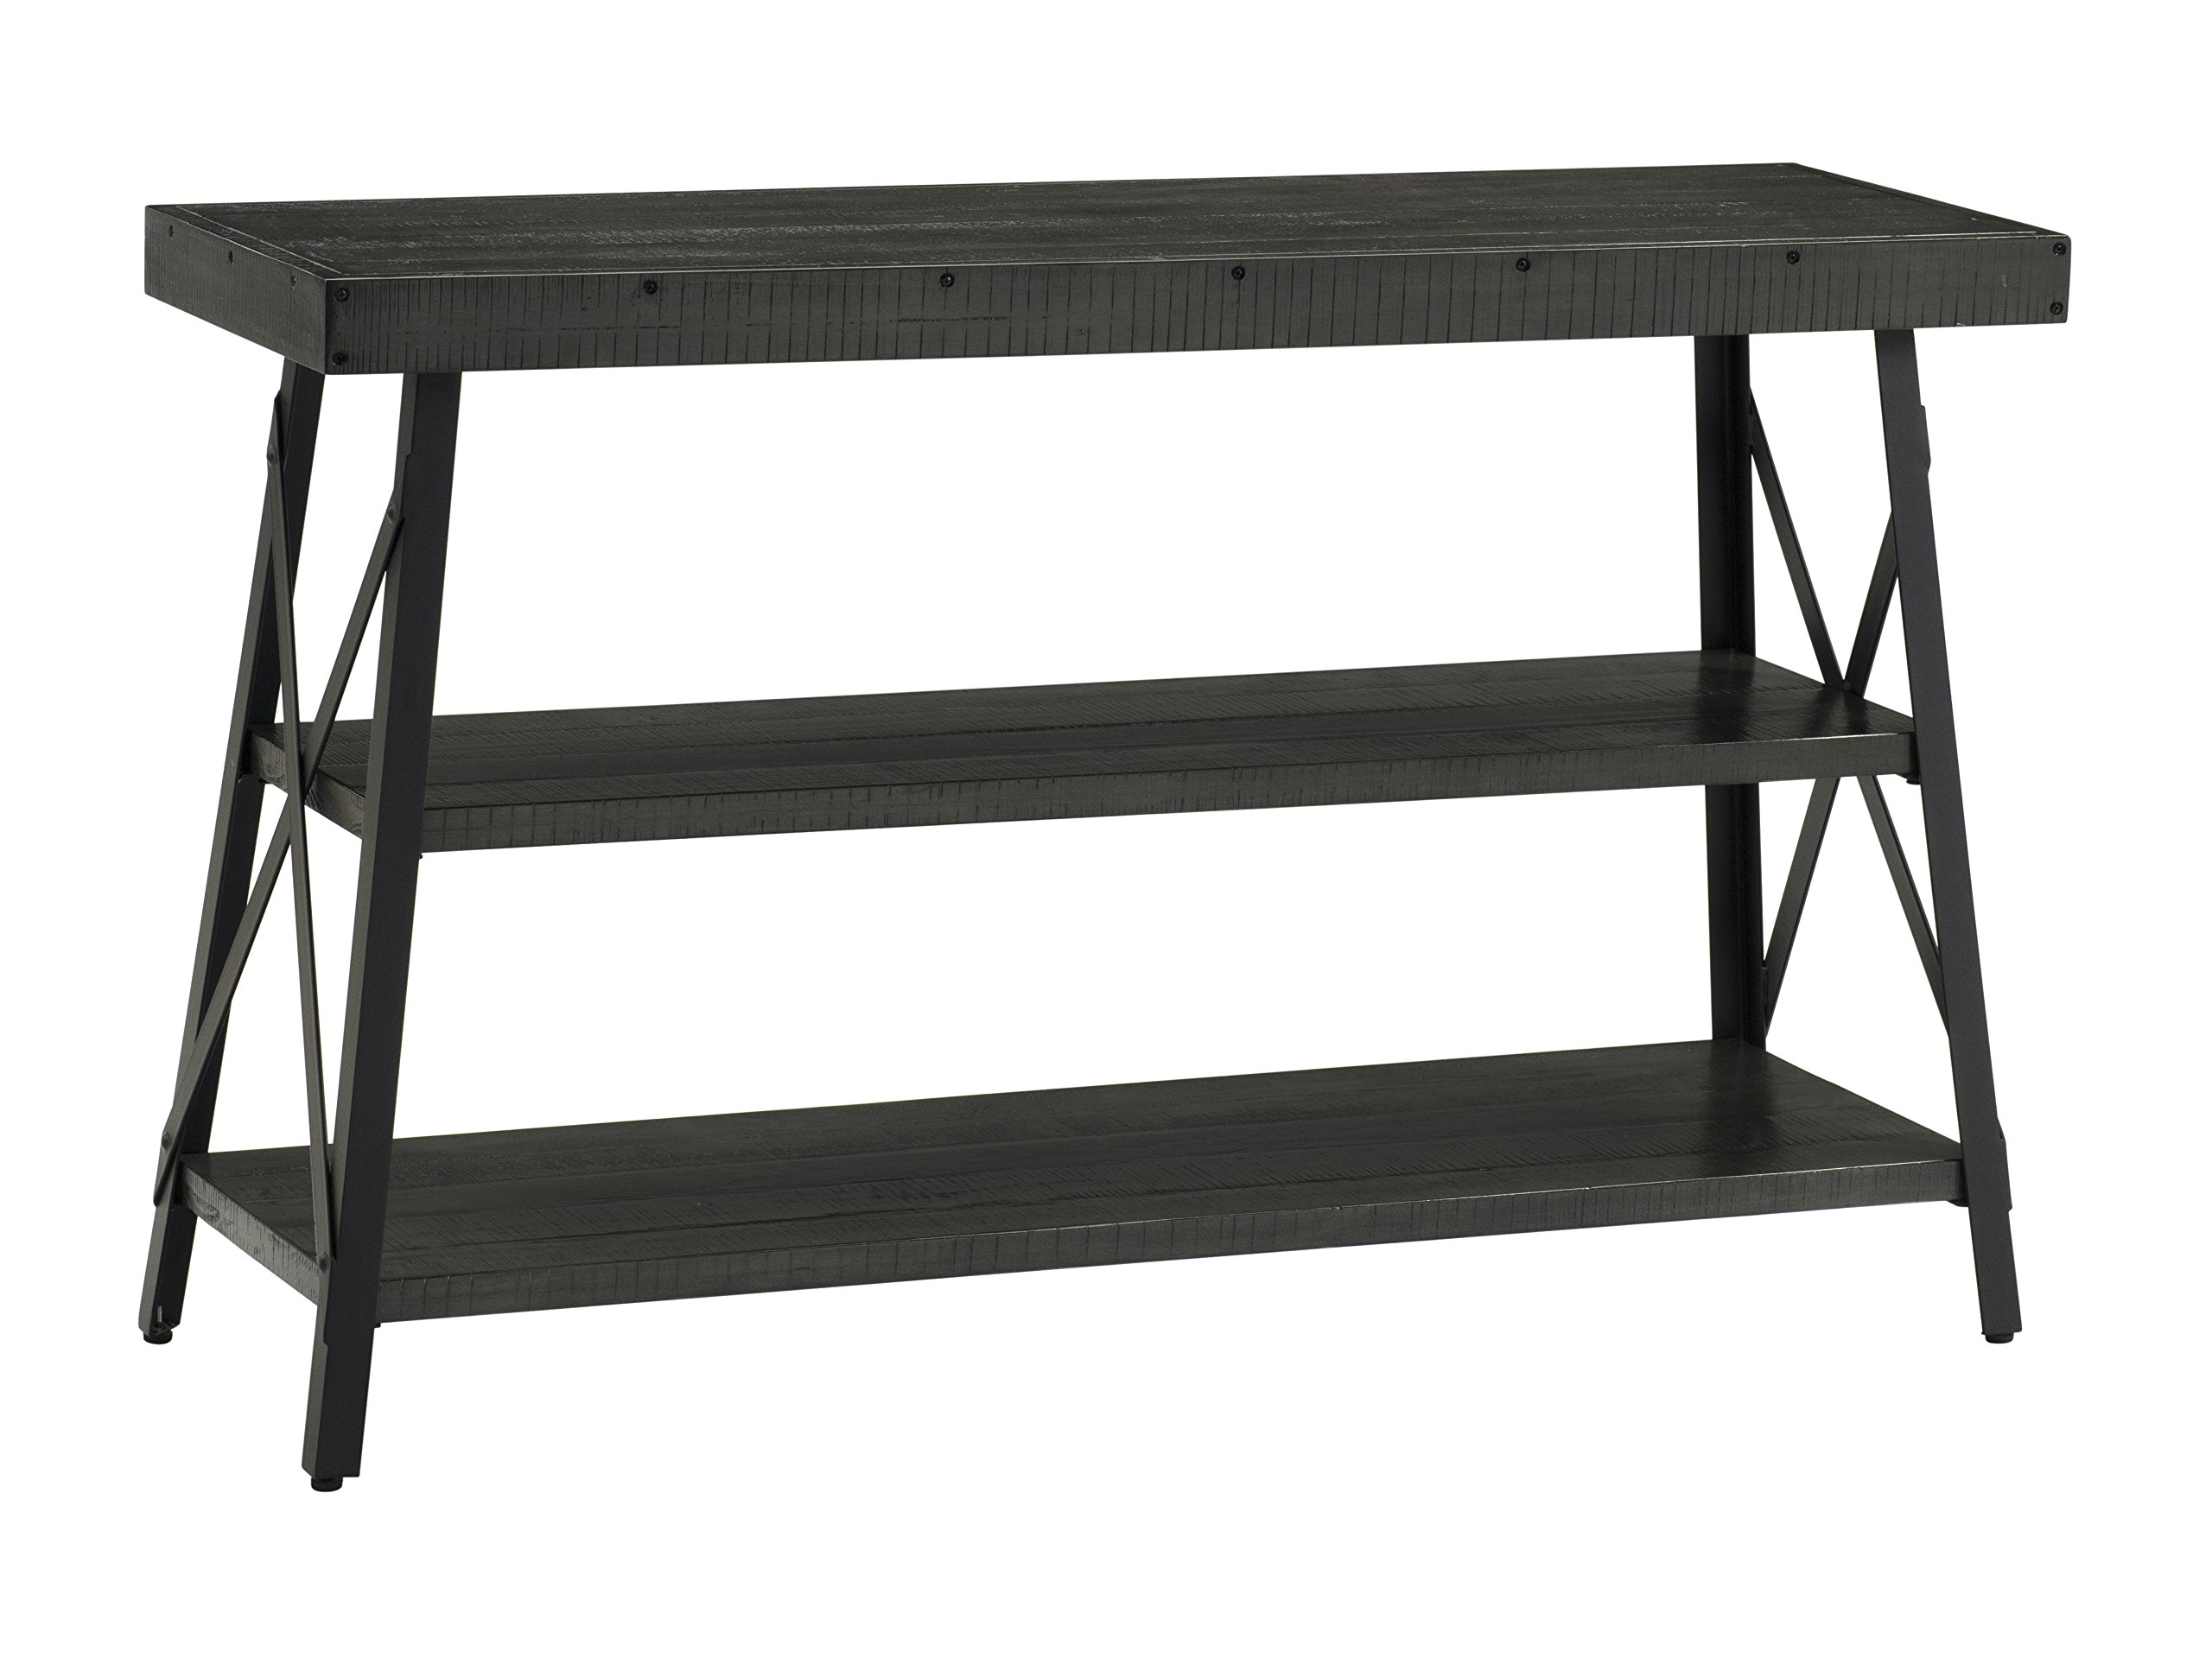 "Martin Svensson Home 890449 Xavier Sofa/Console Table, Grey - Finish: dark Grey with rough-hewn saw marks Crafted from solid wood - New Zealand pine with rough hewn saw marks Exposed rivets across the Top and Black Steel metal ""x"" cross on the end caps give it a distinct industrial and rustic look - living-room-furniture, living-room, console-tables - 81vPURqKTpL -"